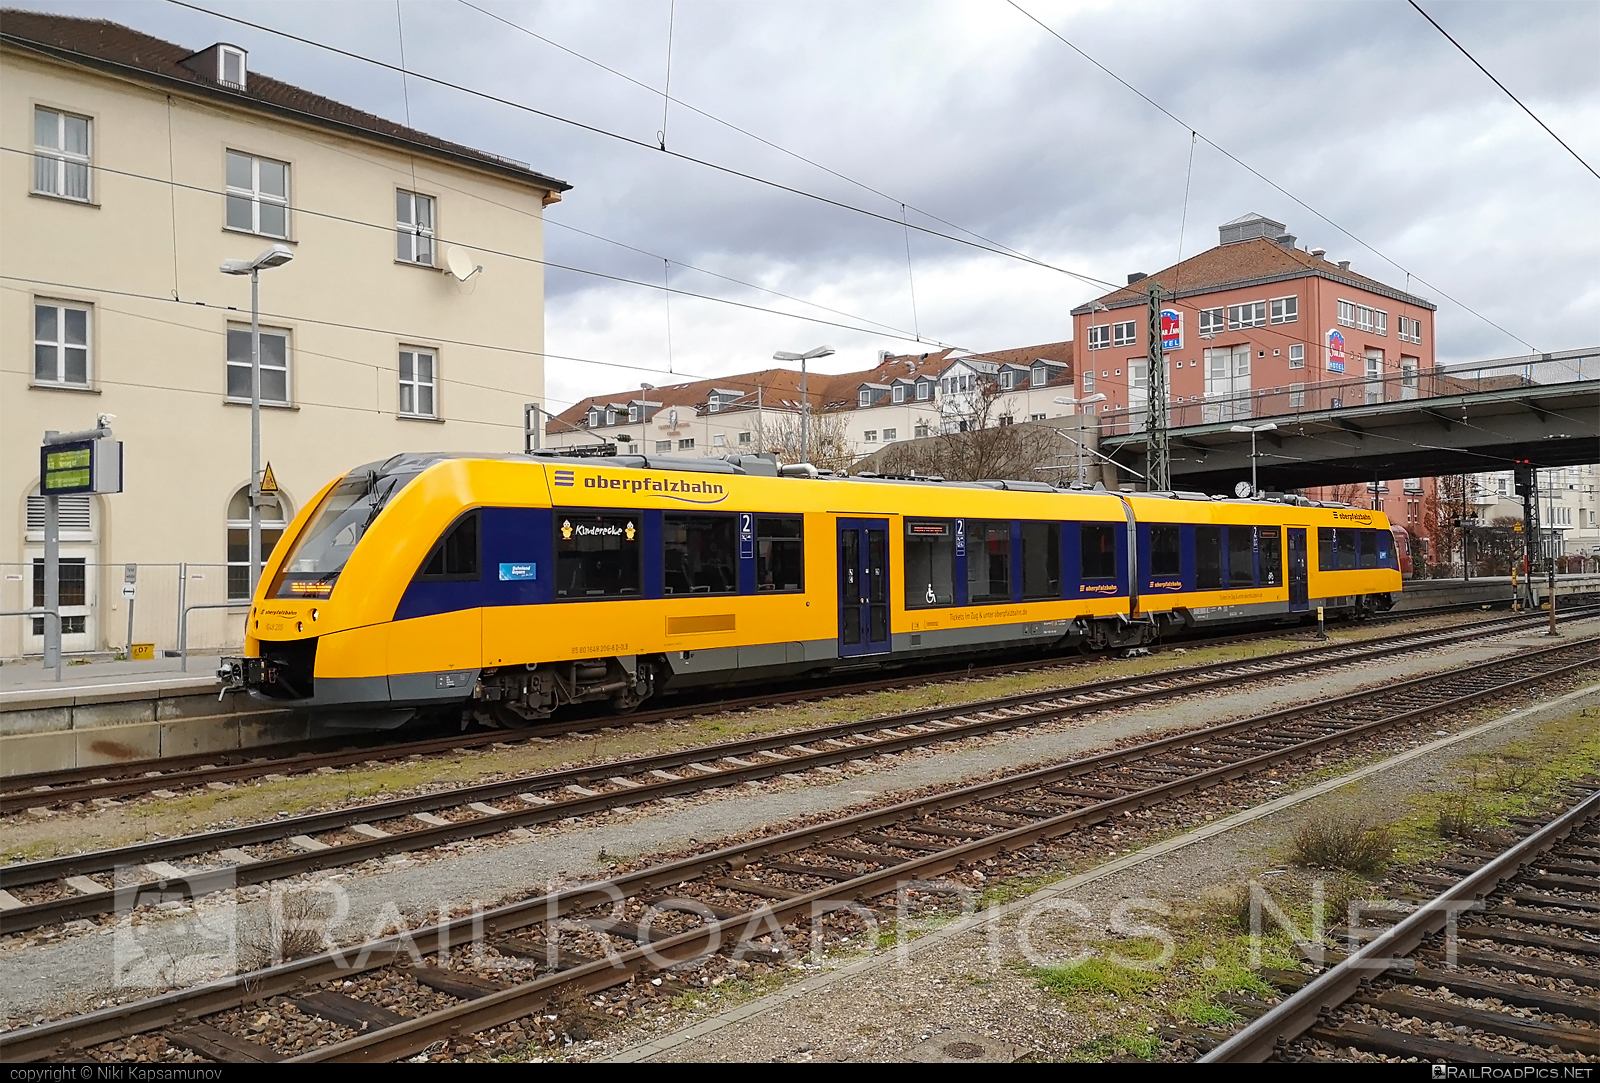 Alstom Coradia LINT 41 - 648 206-8 operated by Die Länderbahn GmbH DLB #alstom #alstomcoradia #alstomcoradialint #alstomcoradialint41 #coradialint41 #dielanderbahn #oberpfalzbahn